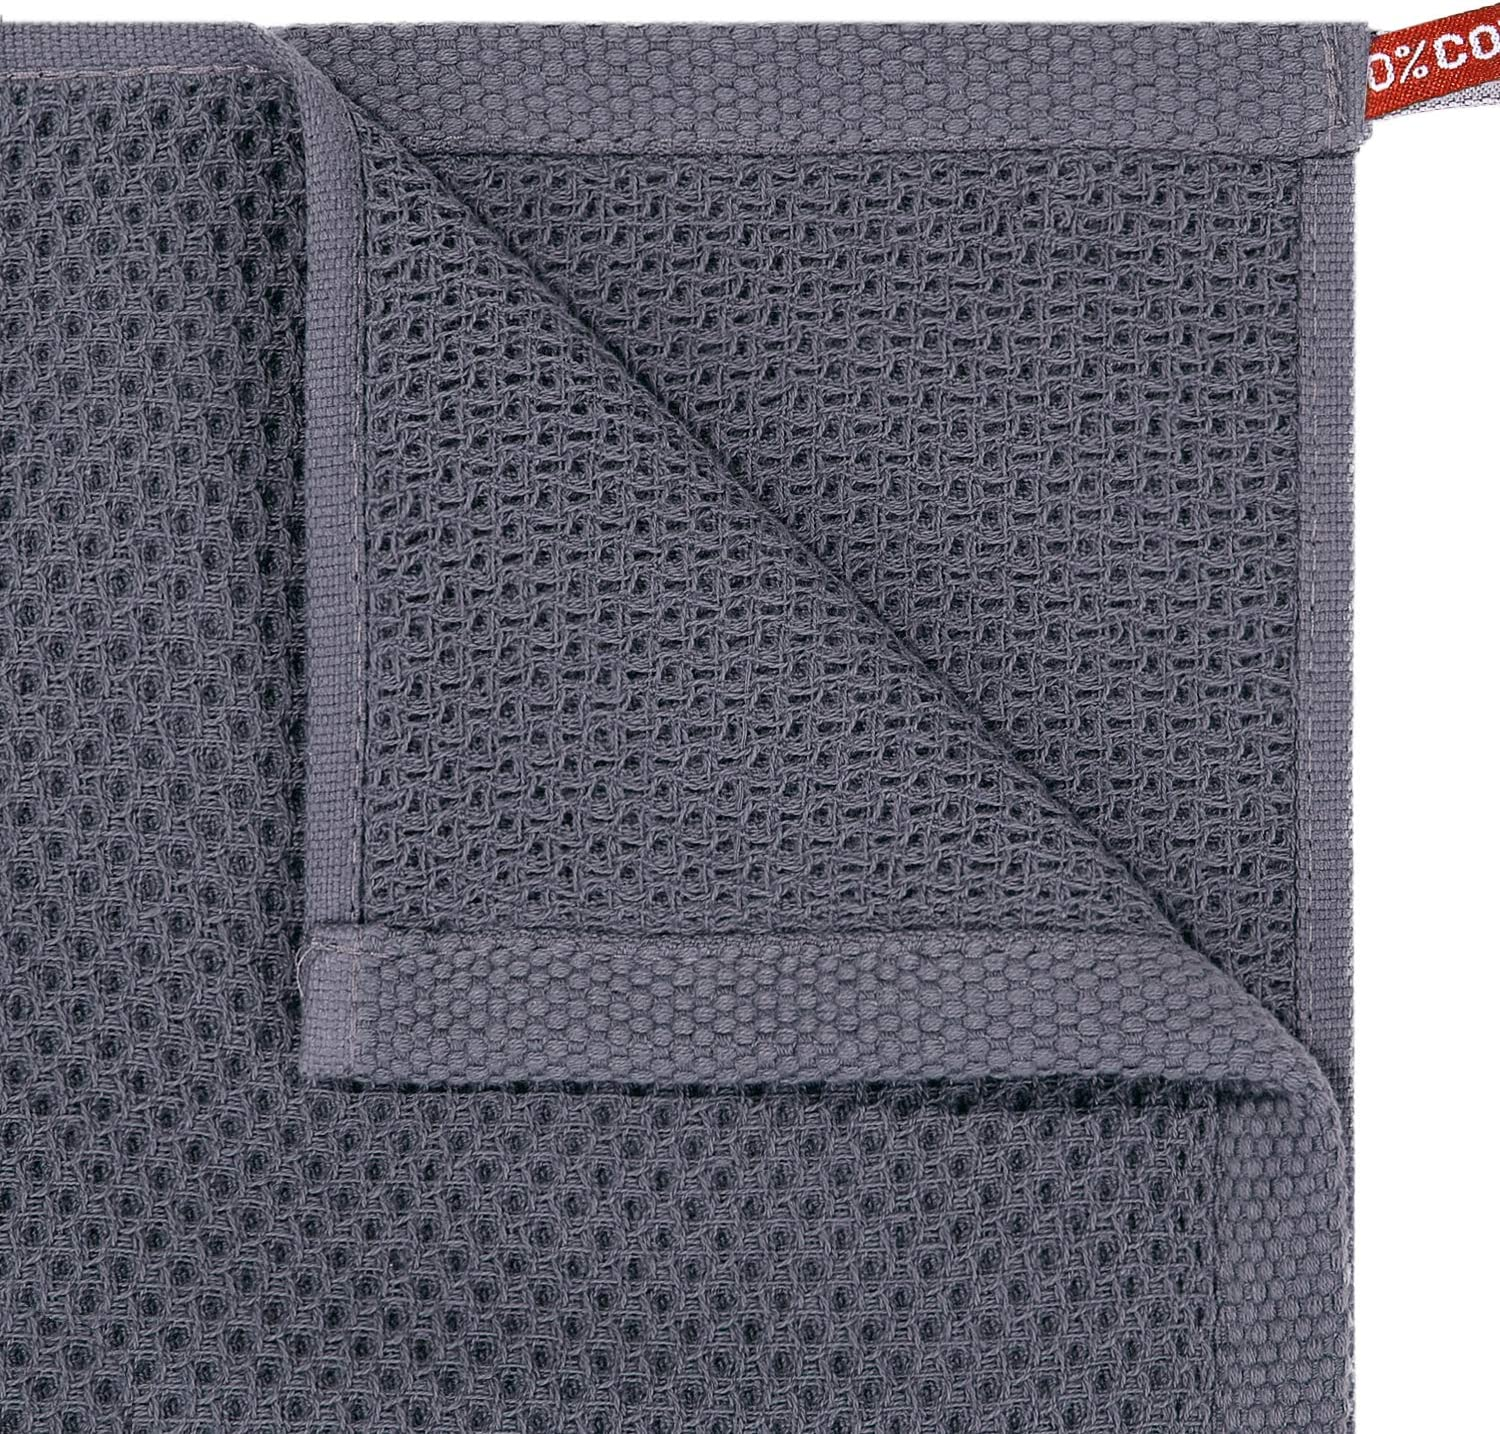 Homaxy 100% Cotton Waffle Weave Kitchen Dish Cloths, Ultra Soft Absorbent Quick Drying Dish Towels, 12x12 Inches, 6-Pack, Dark Grey: Home & Kitchen